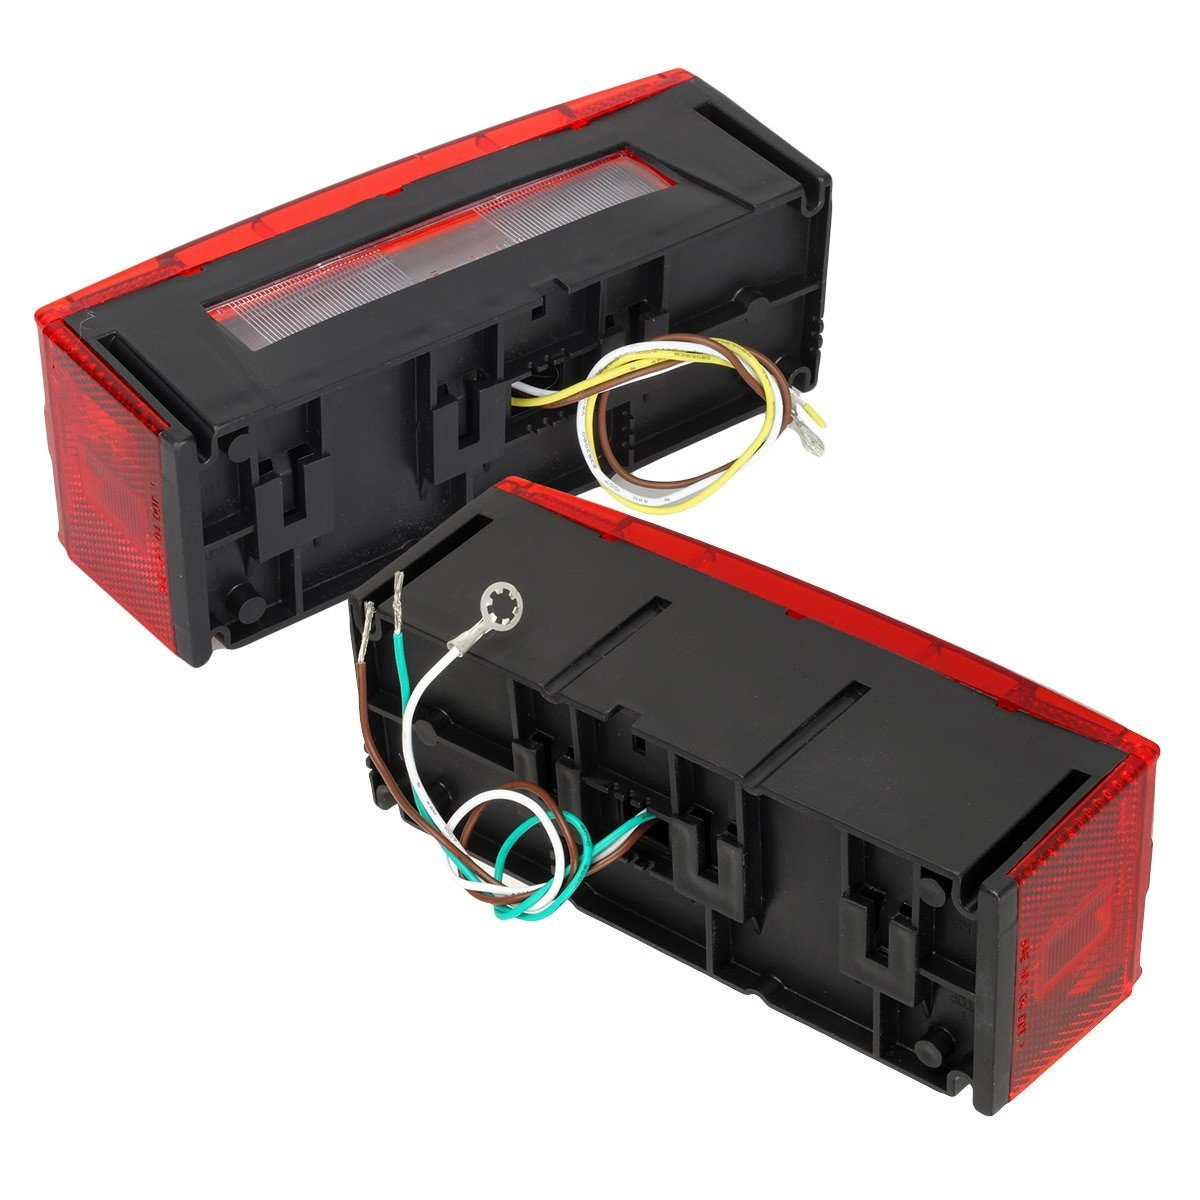 Led Over 80 Wide Trailer Light Kit Submersible Tail And Identificaton Wiring Harness Kits License Stop Turn Brake W Wire